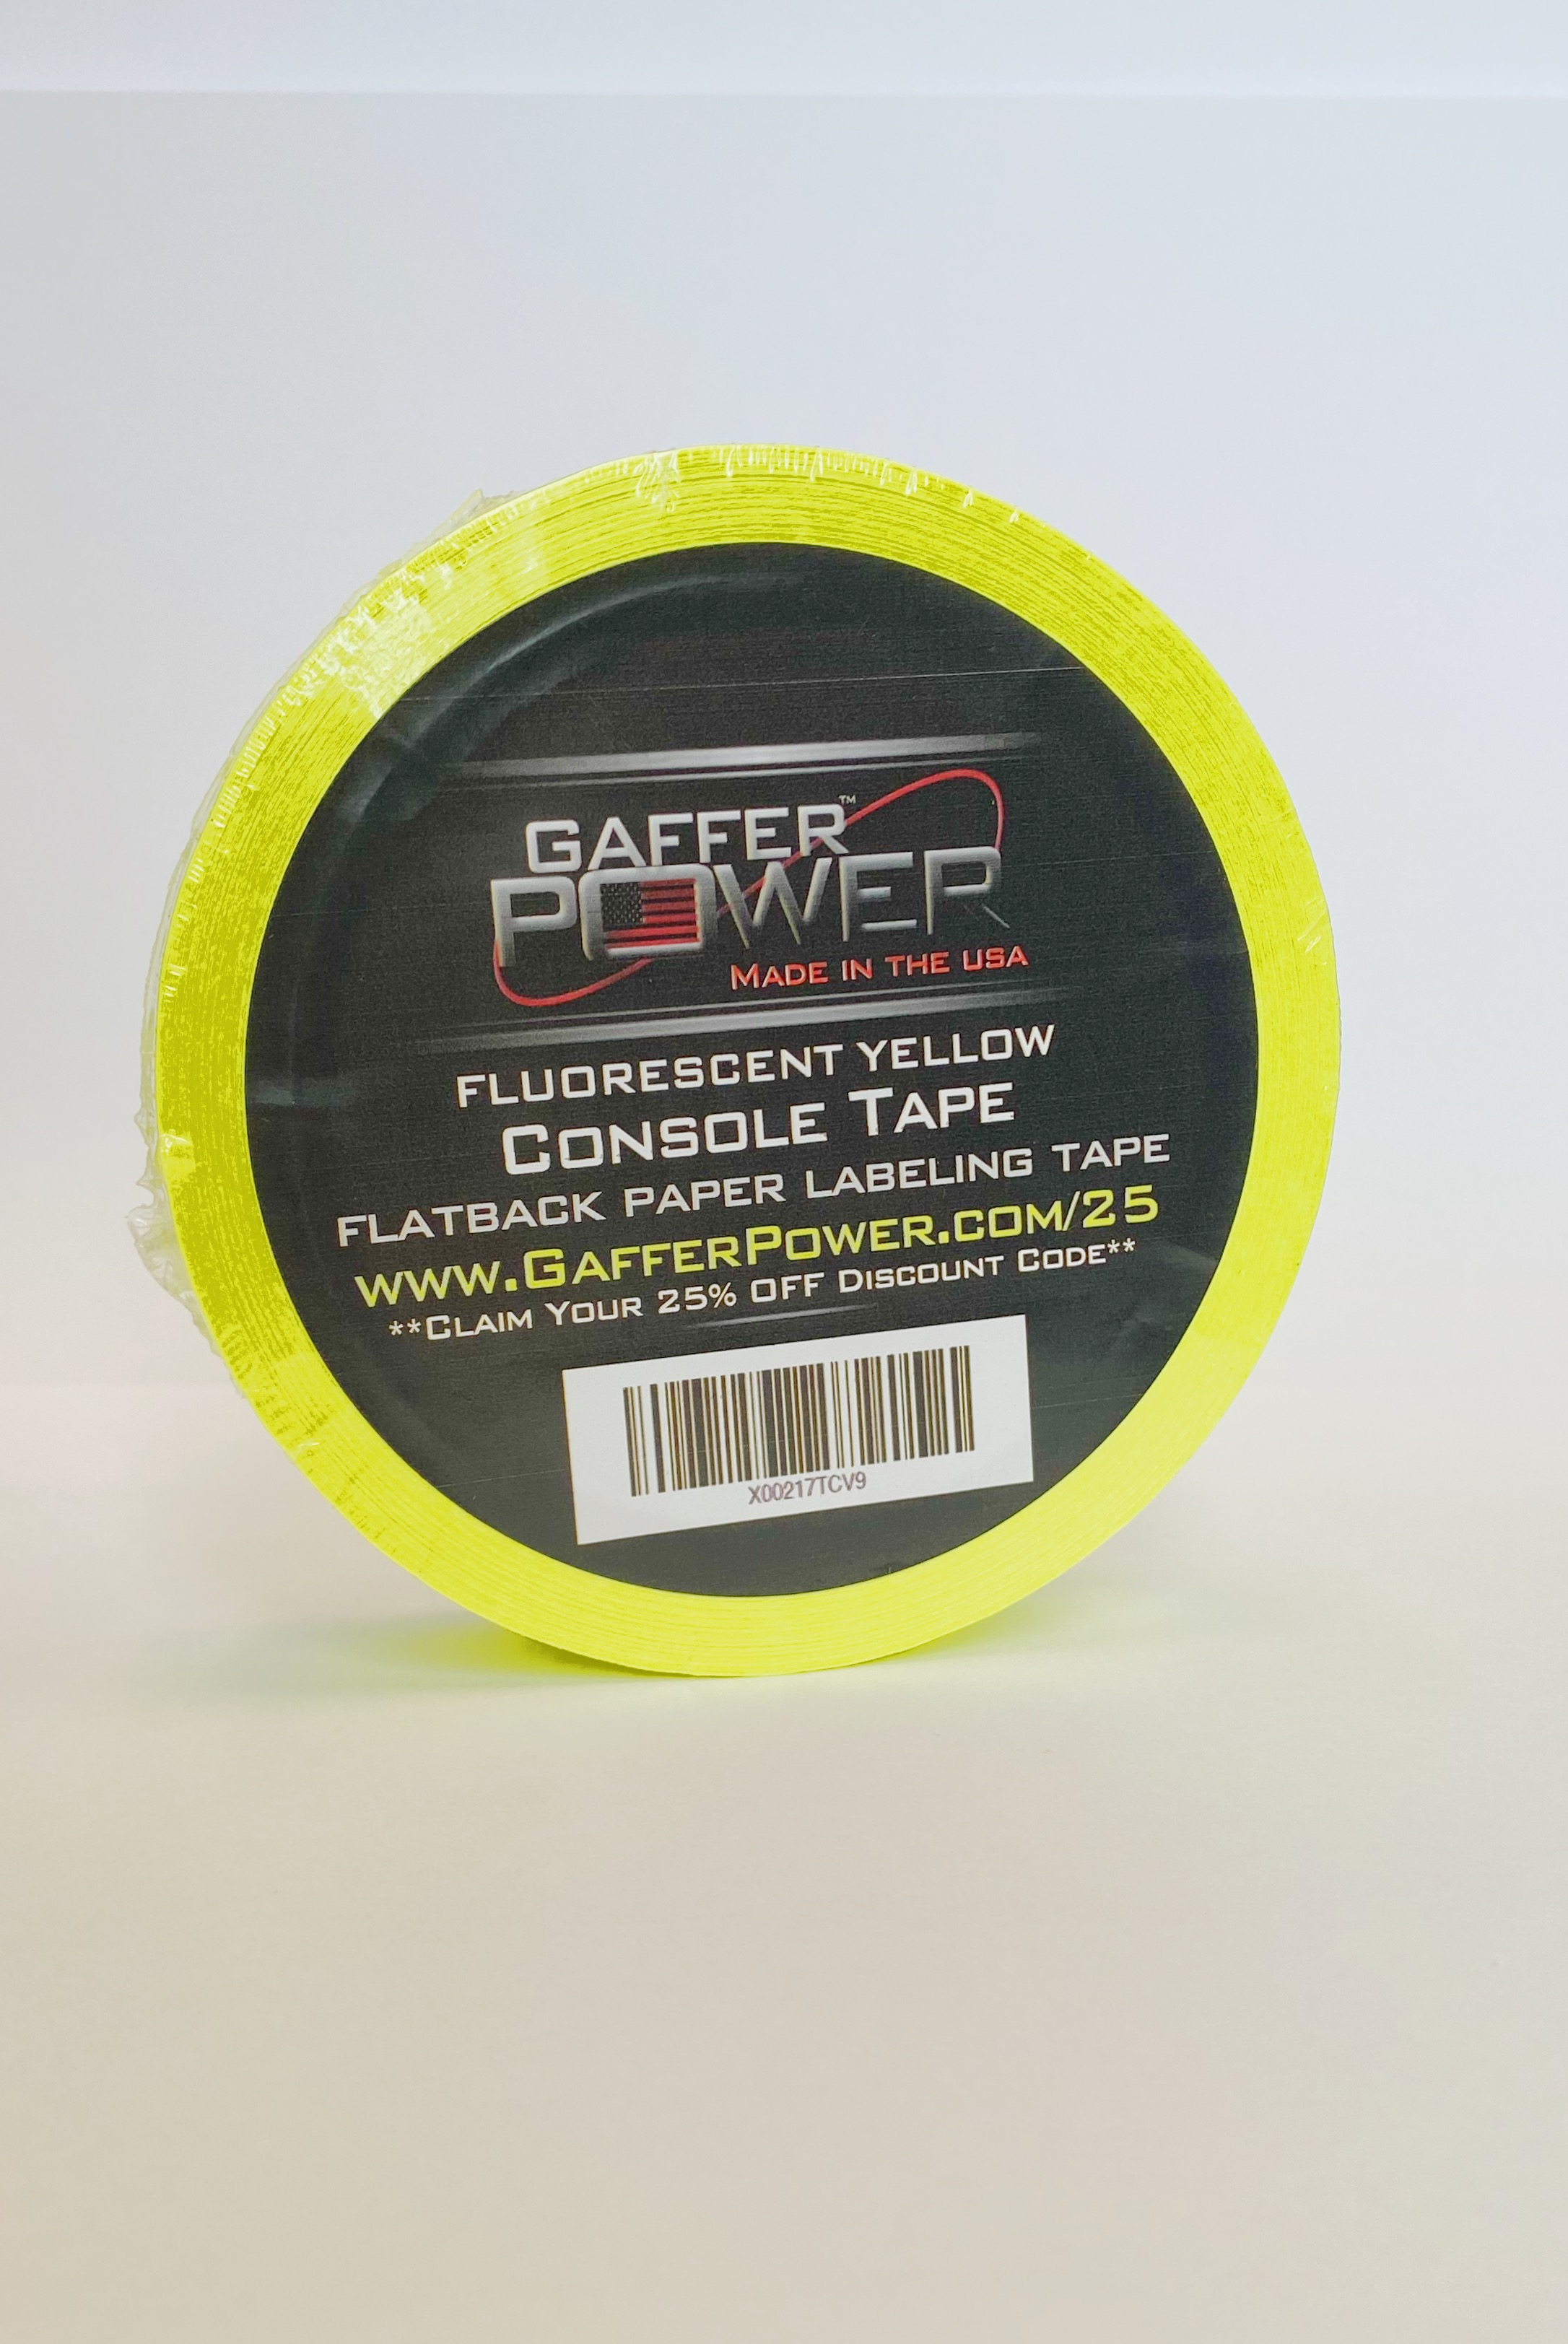 Gaffer Power Gaffer Tape - 1in x 20 Yards - Fluorescent Yellow